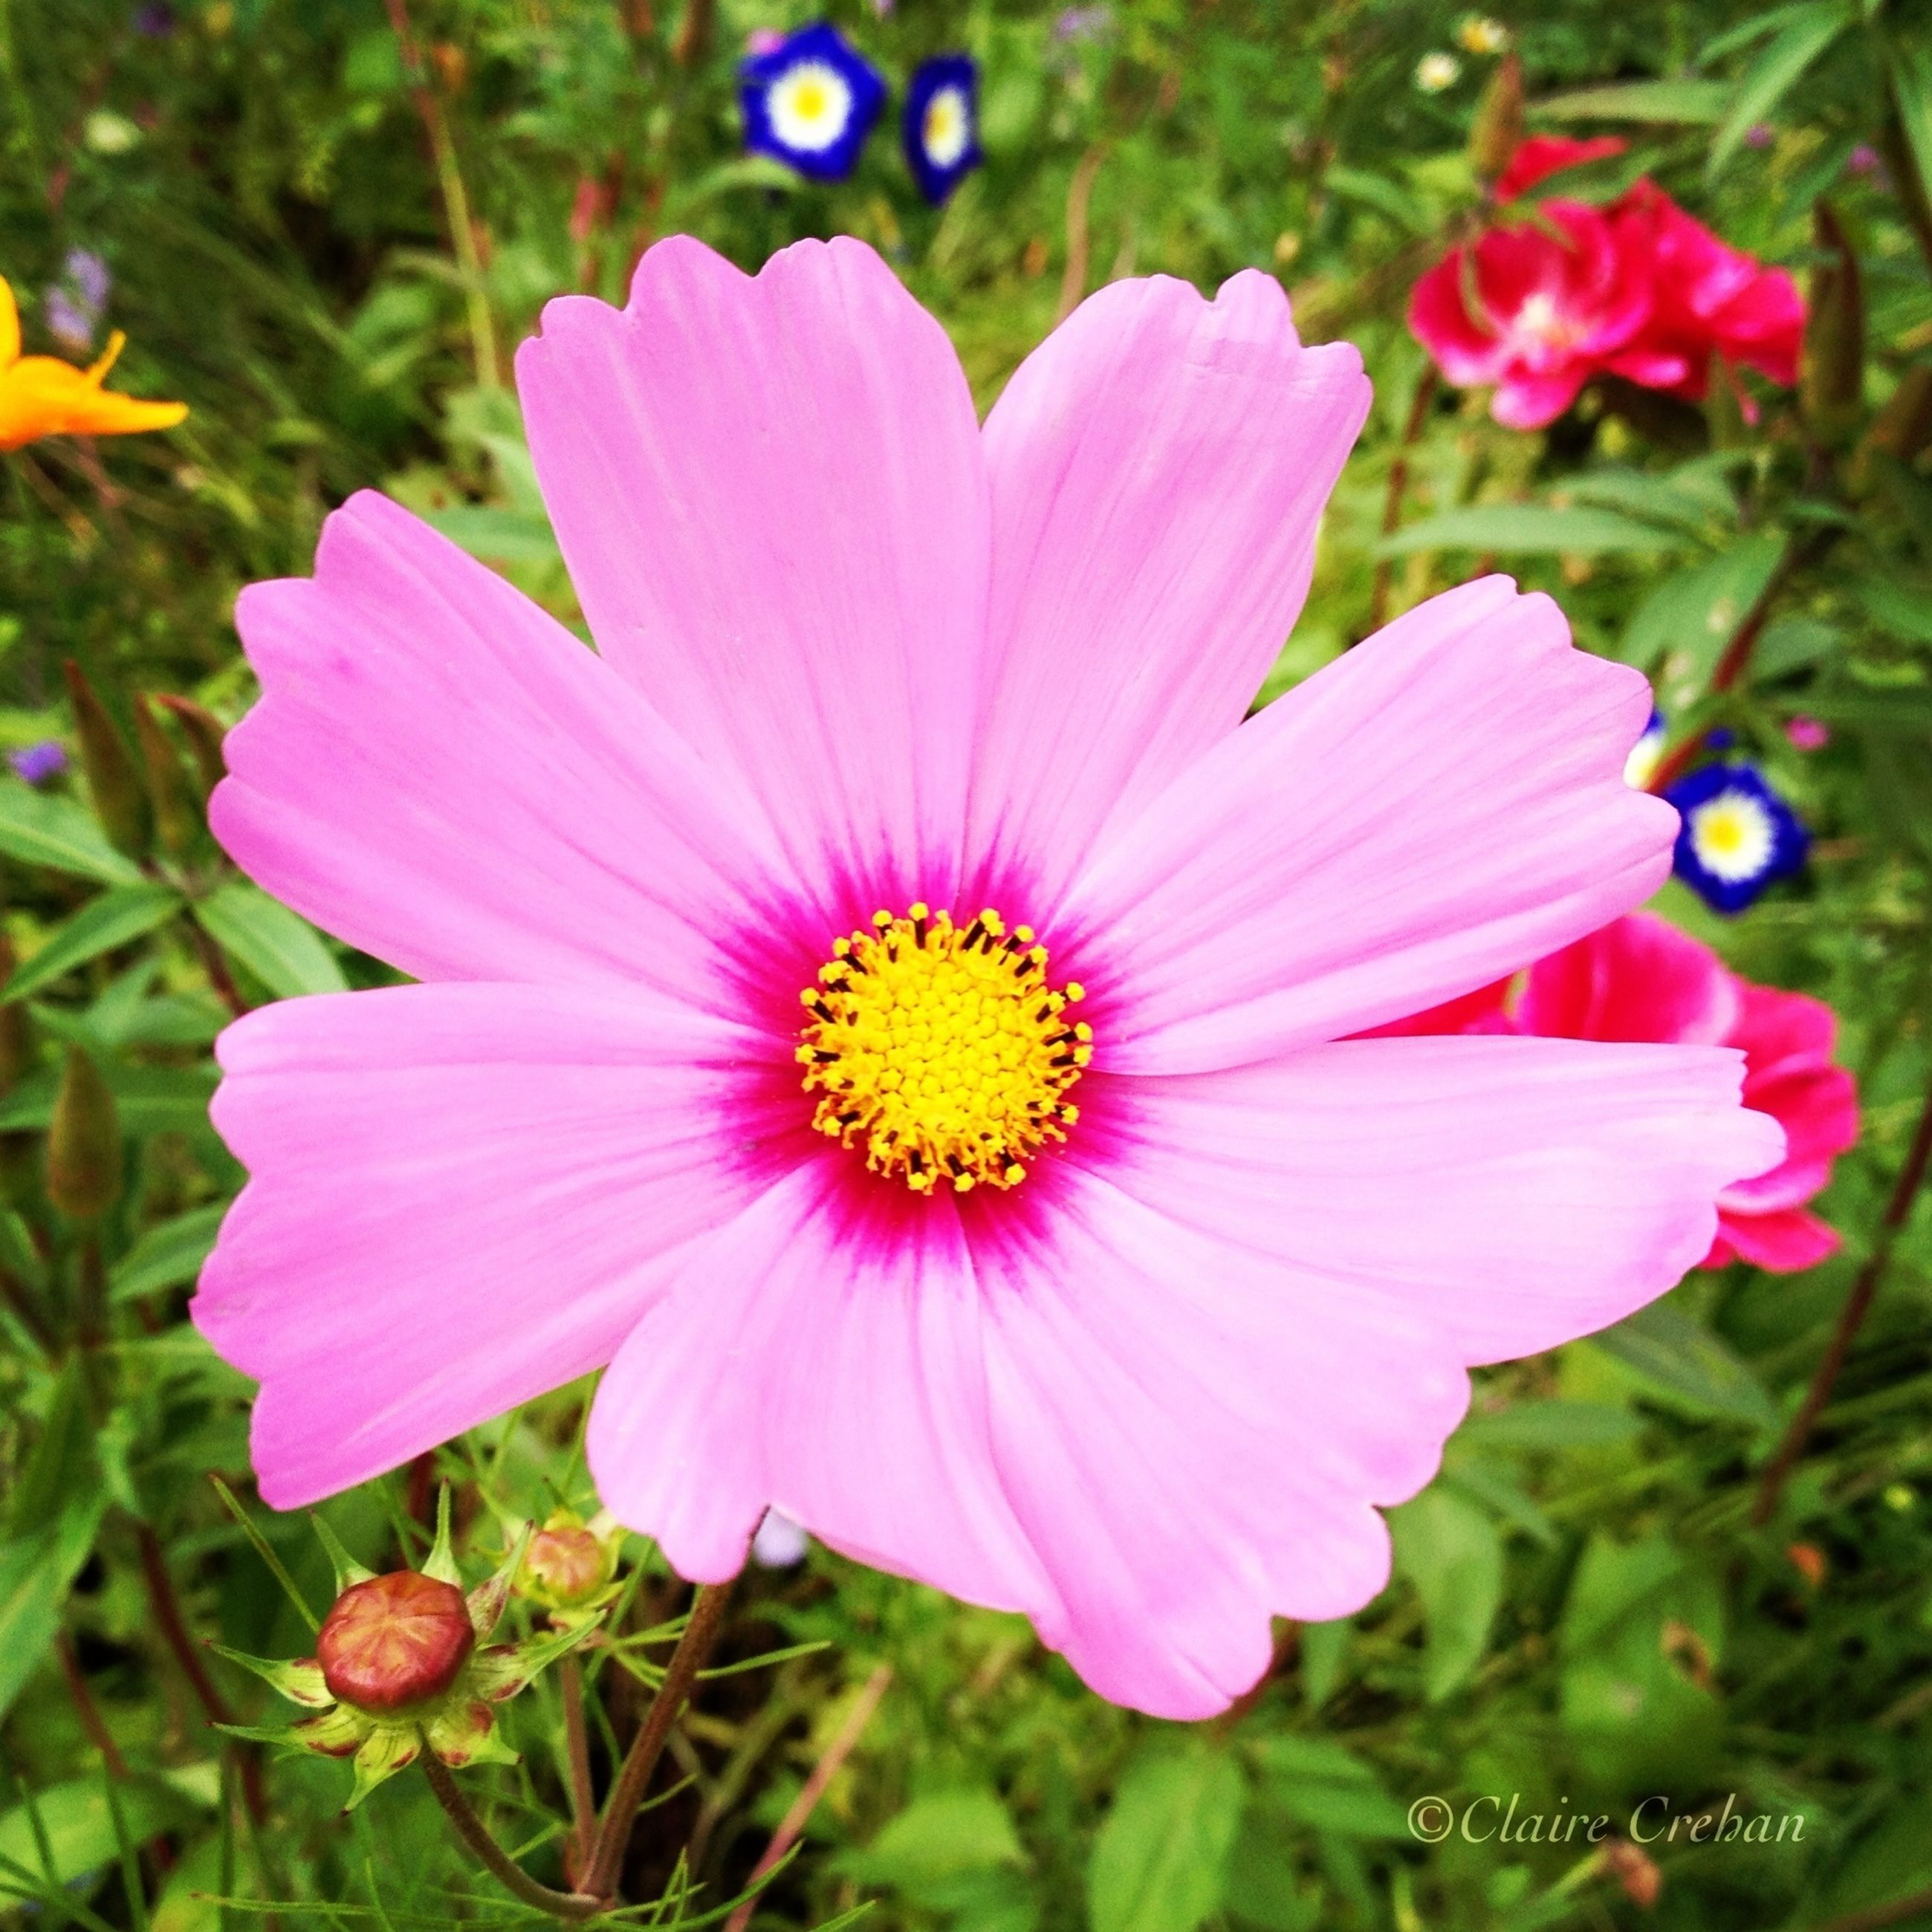 flower, petal, freshness, flower head, fragility, pink color, growth, pollen, beauty in nature, blooming, close-up, single flower, nature, focus on foreground, plant, cosmos flower, in bloom, stamen, pink, day